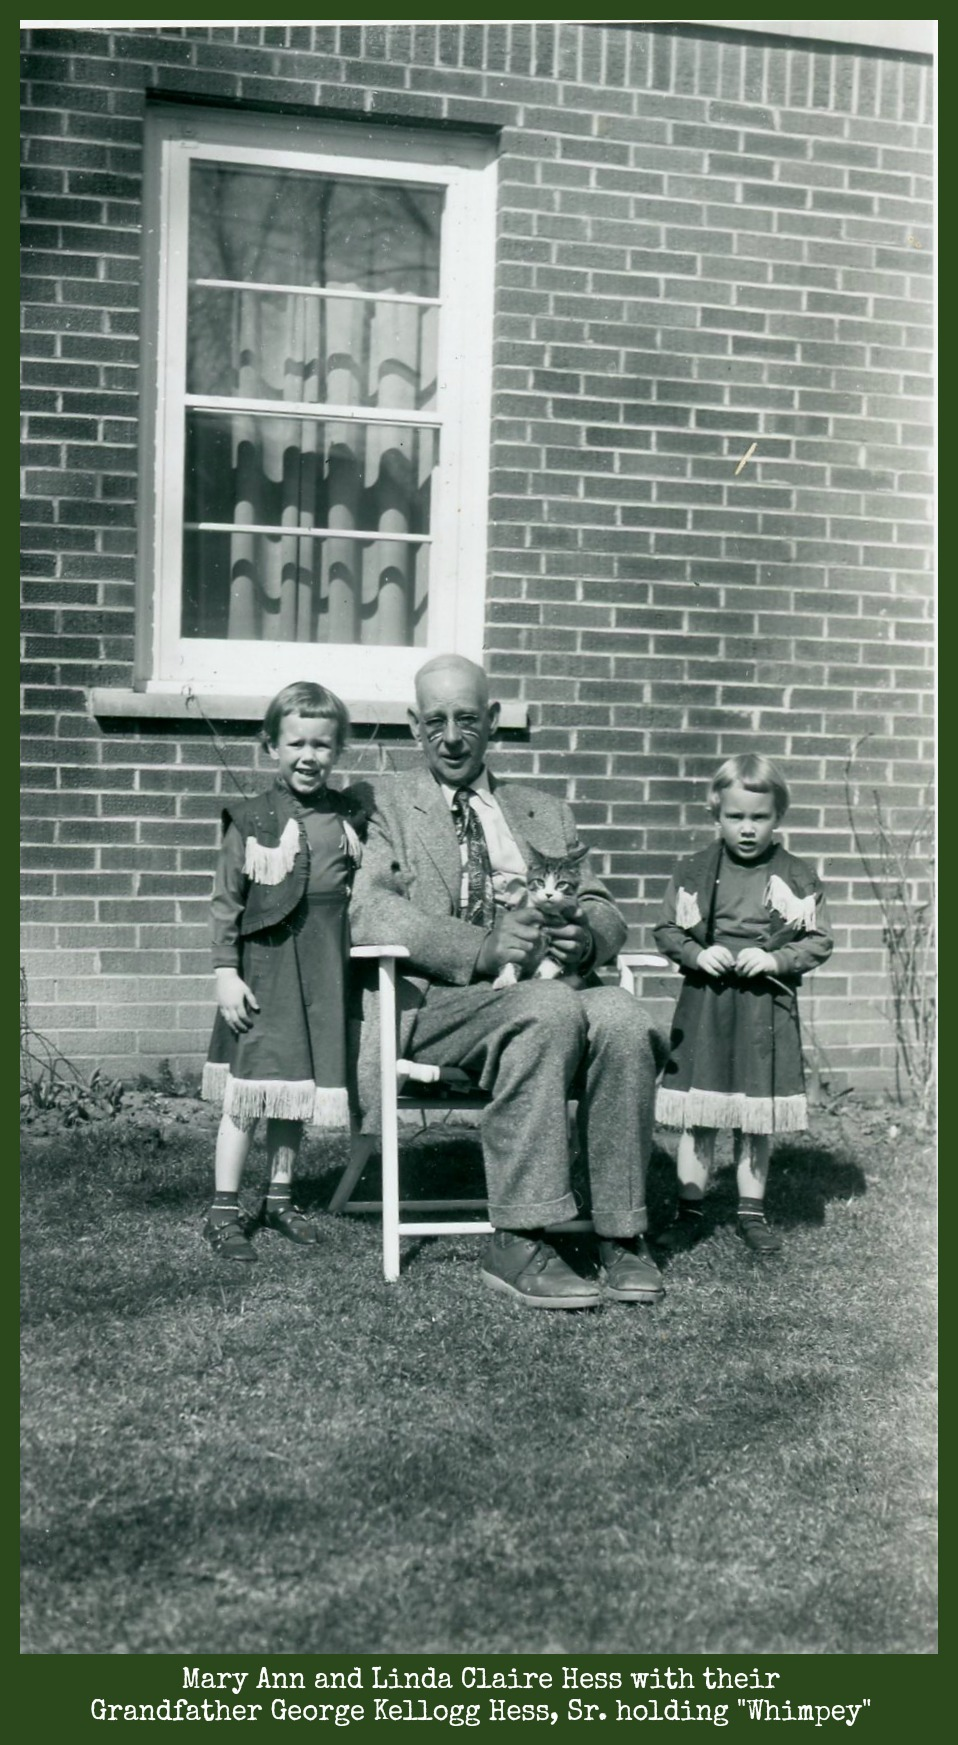 George Kellogg Hess Sr. holding Whimpey with Mary Ann and Linda Claire